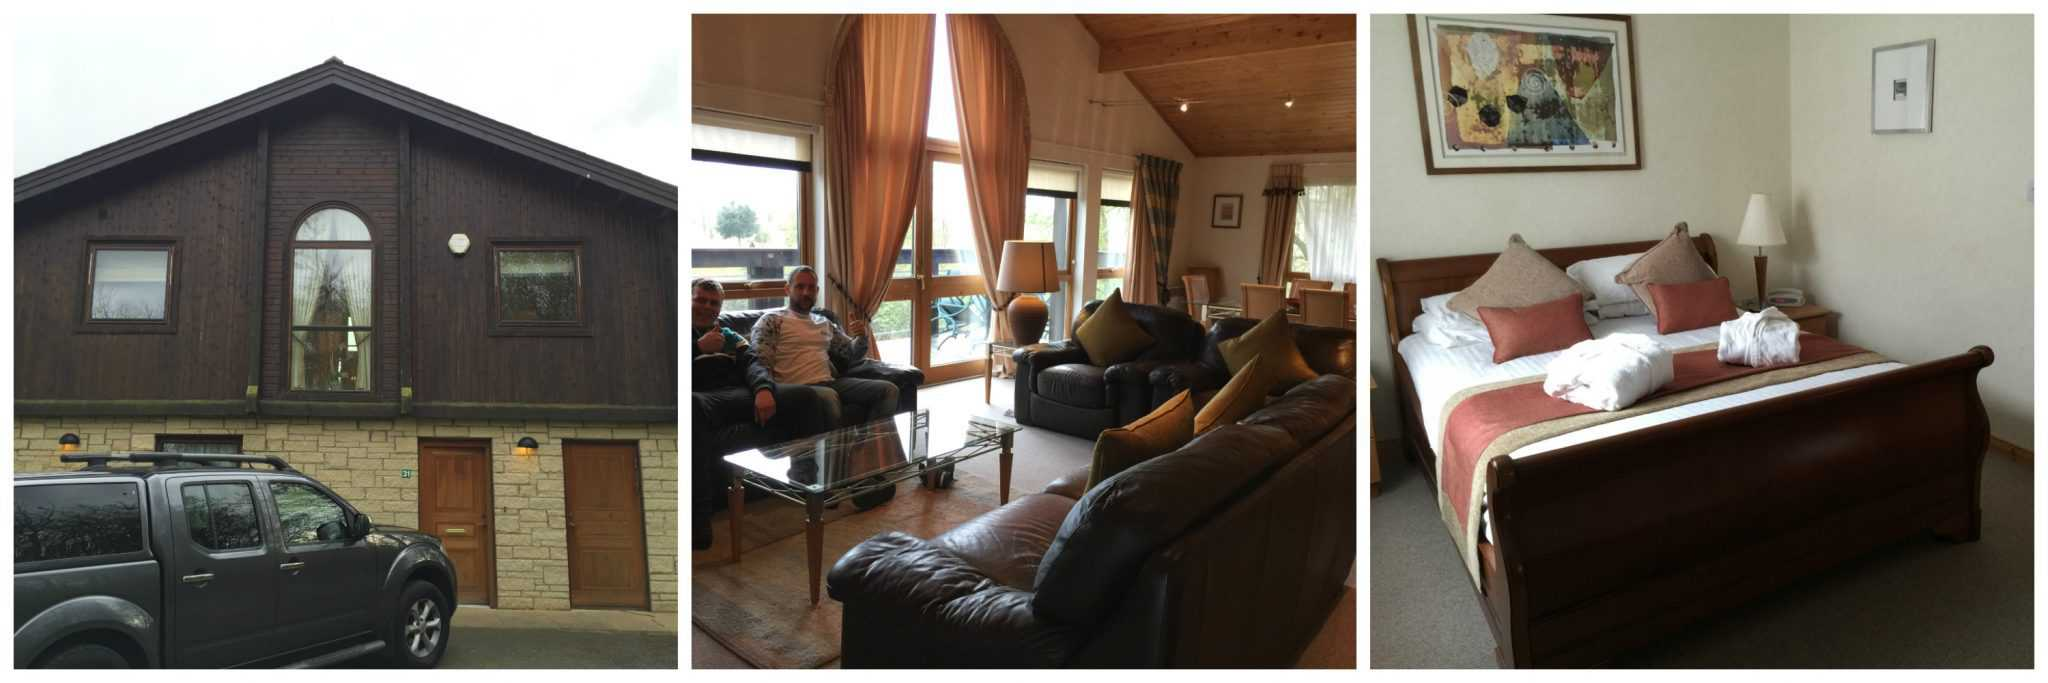 Outside, lounge and bedroom at Belton Woods Q Lodges